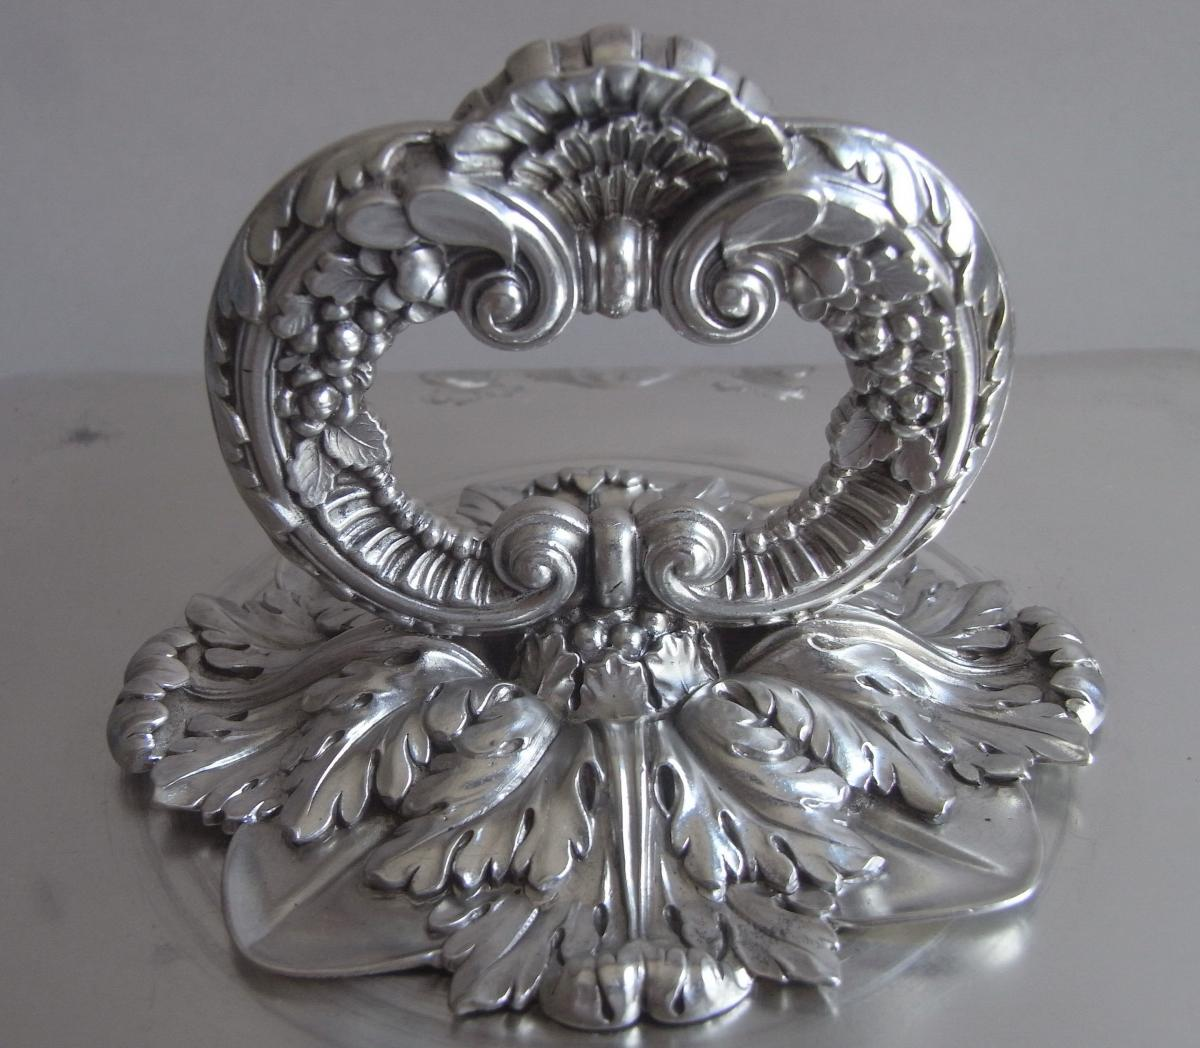 An exceptionally fine George III Entree Dish made in London in 1818 by Benjamin Smith